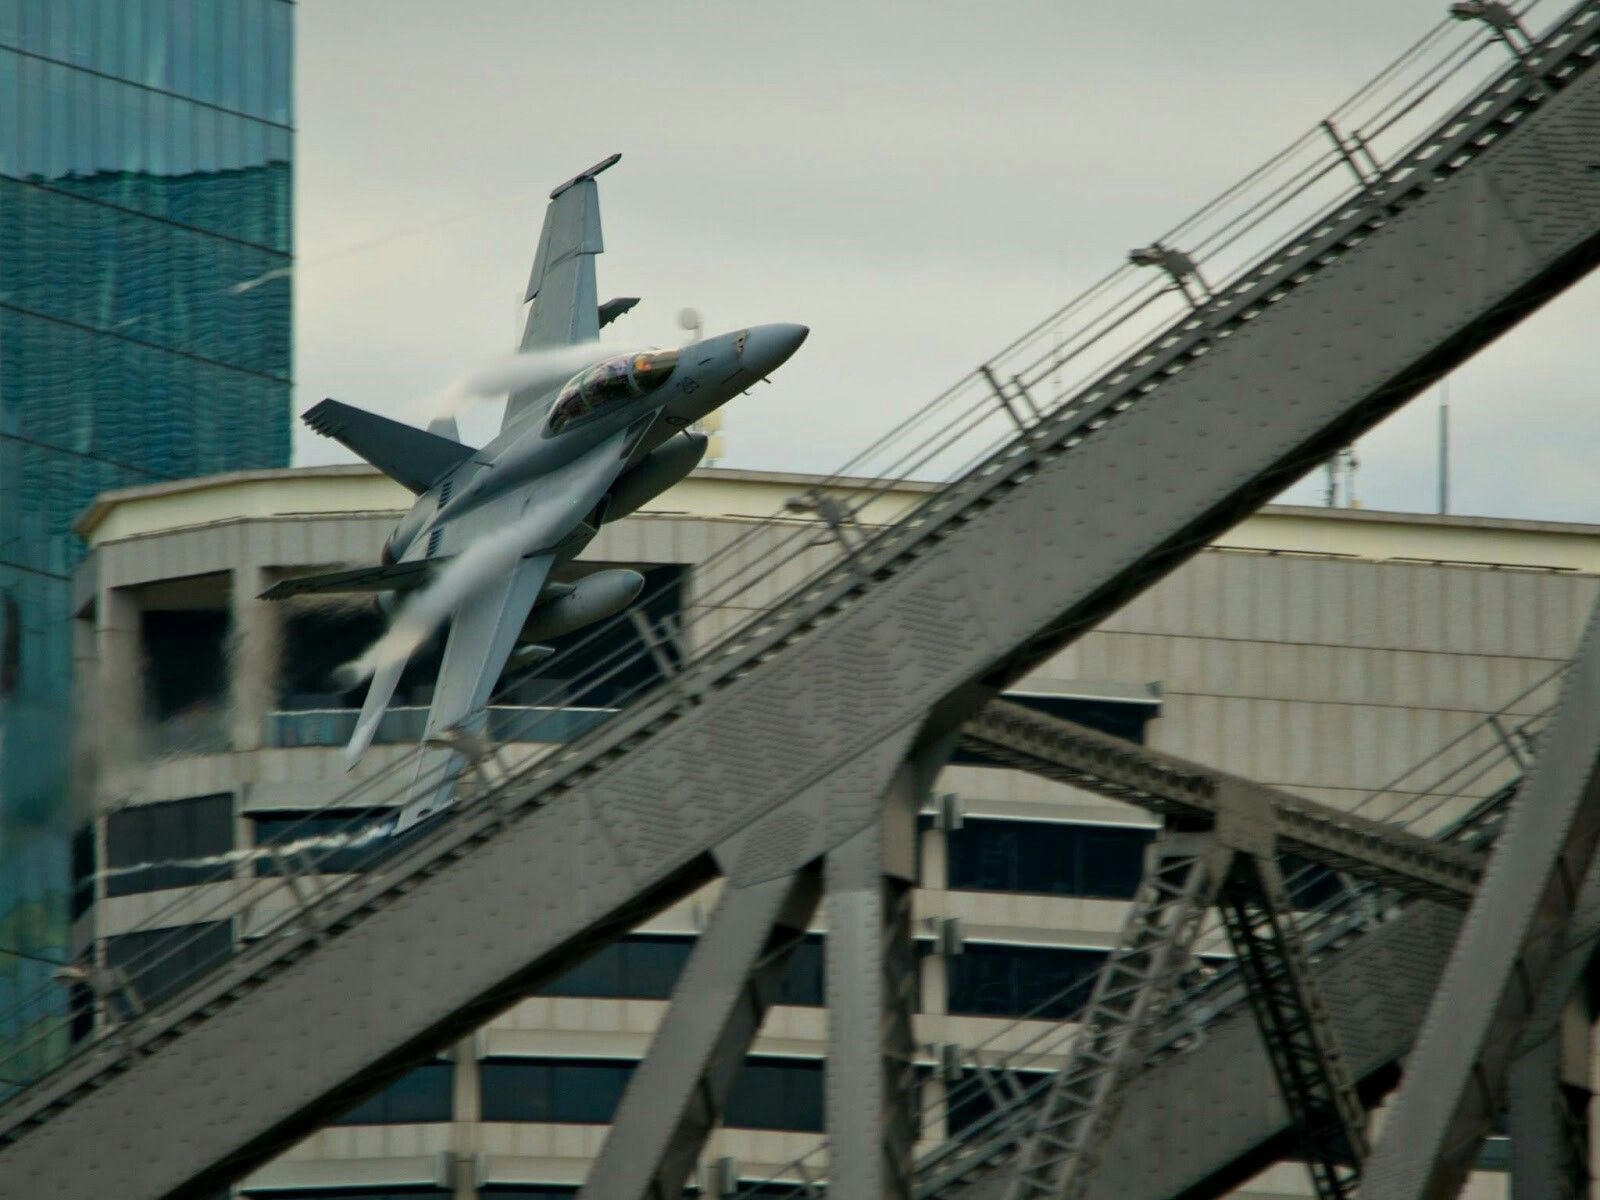 RAAF F18 down low at River Fire Brisbane Fighter planes